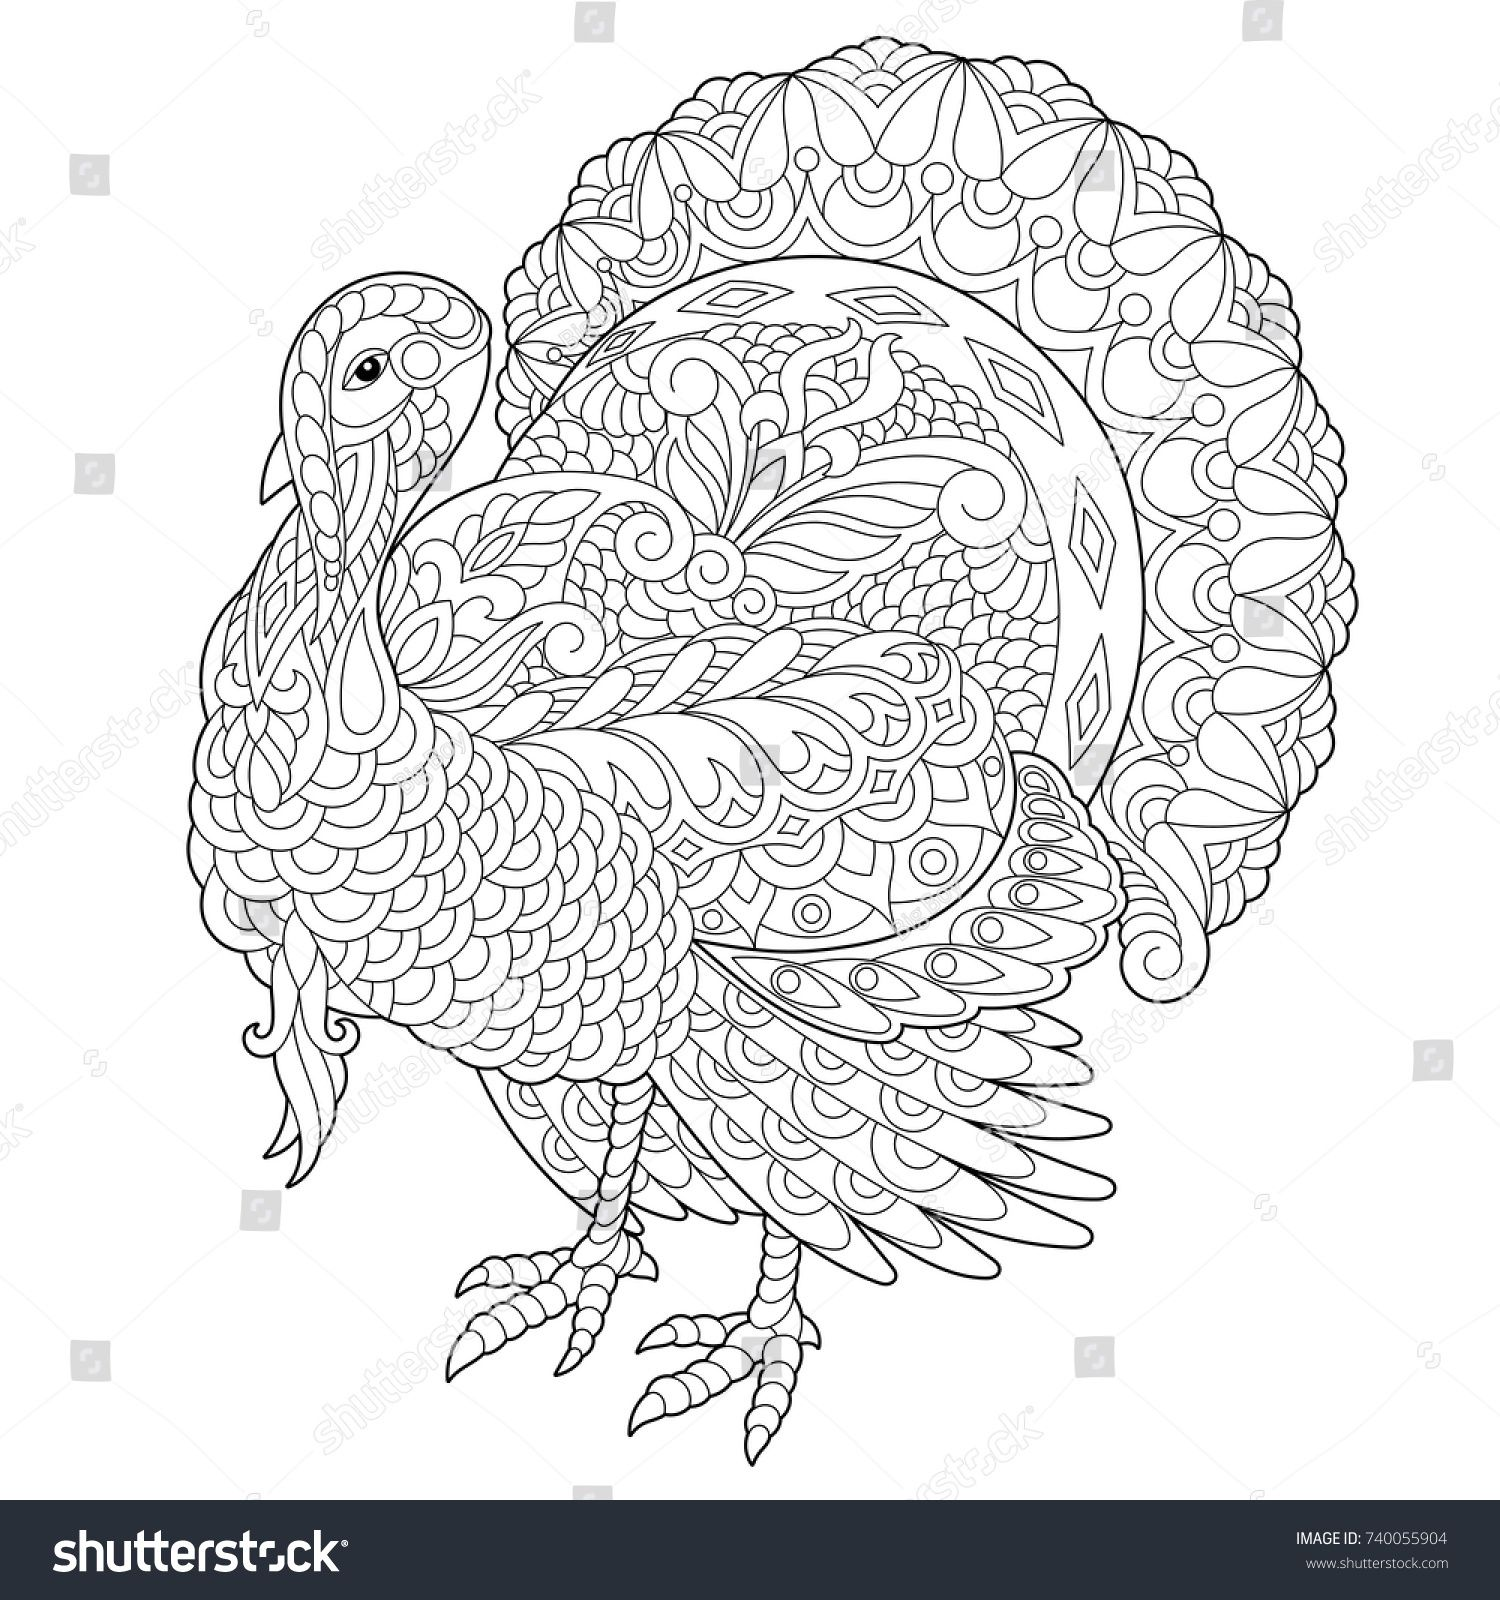 Coloring page of turkey for Thanksgiving Day greeting card. Freehand ...